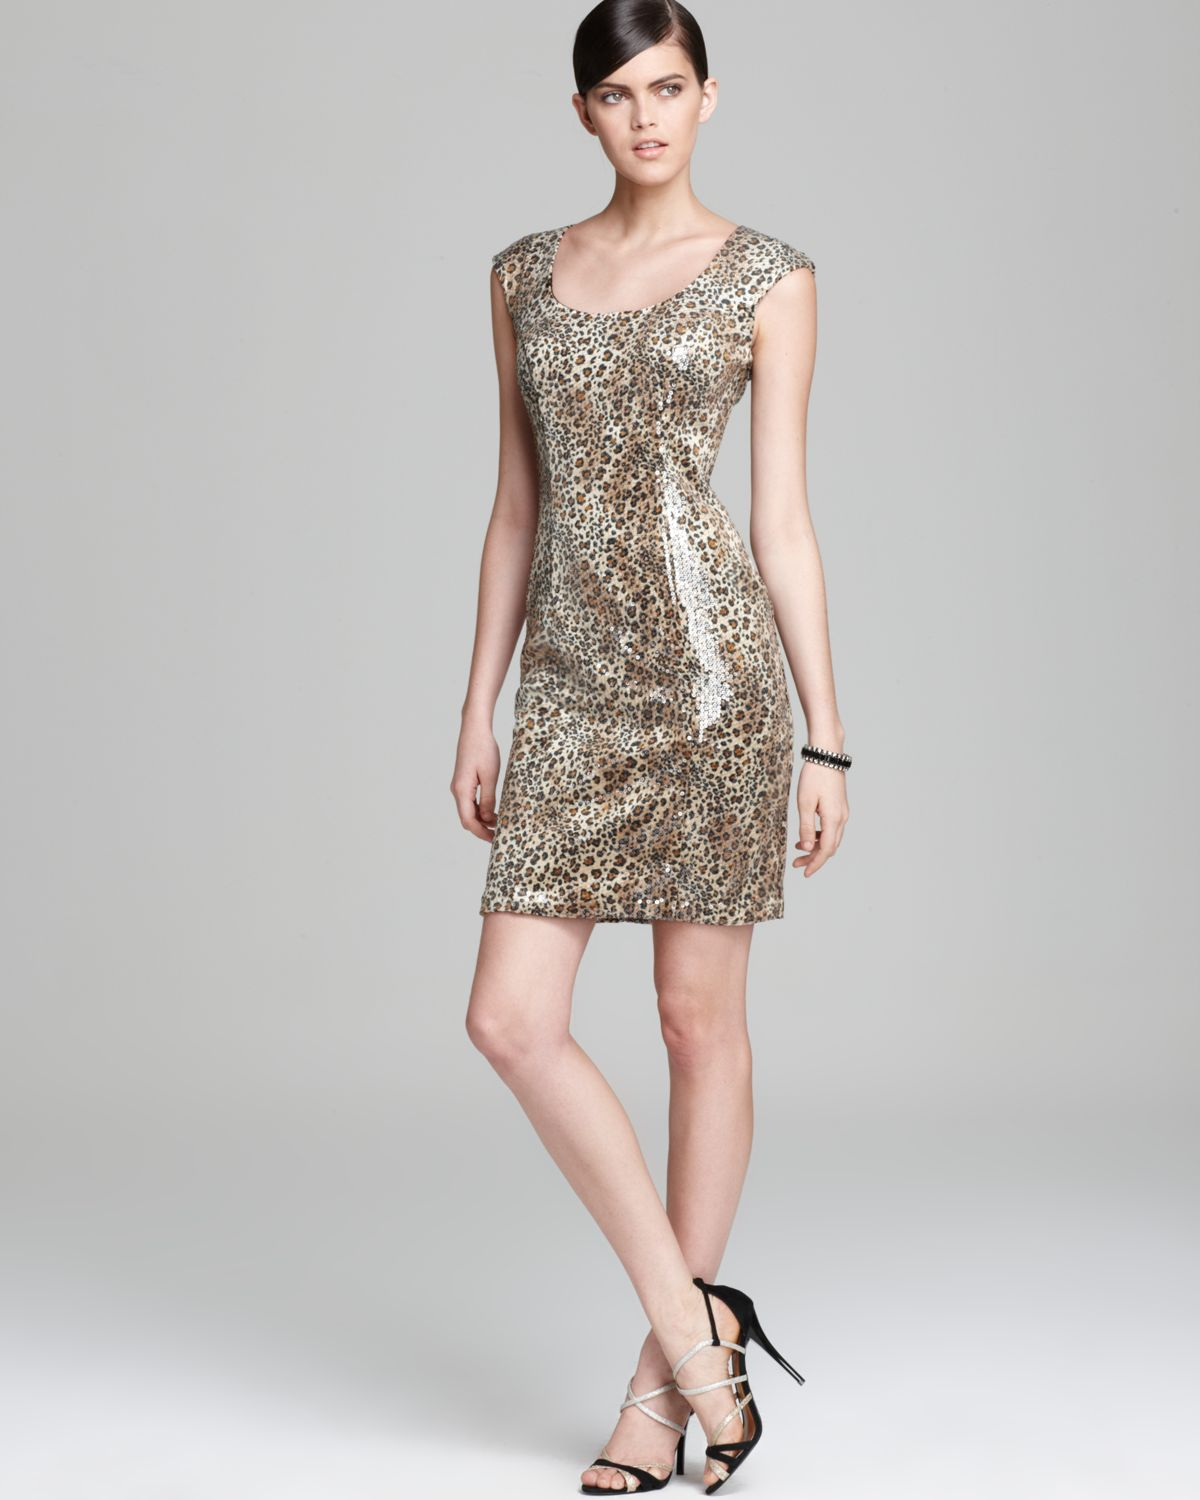 Animal Print Sequin Dress